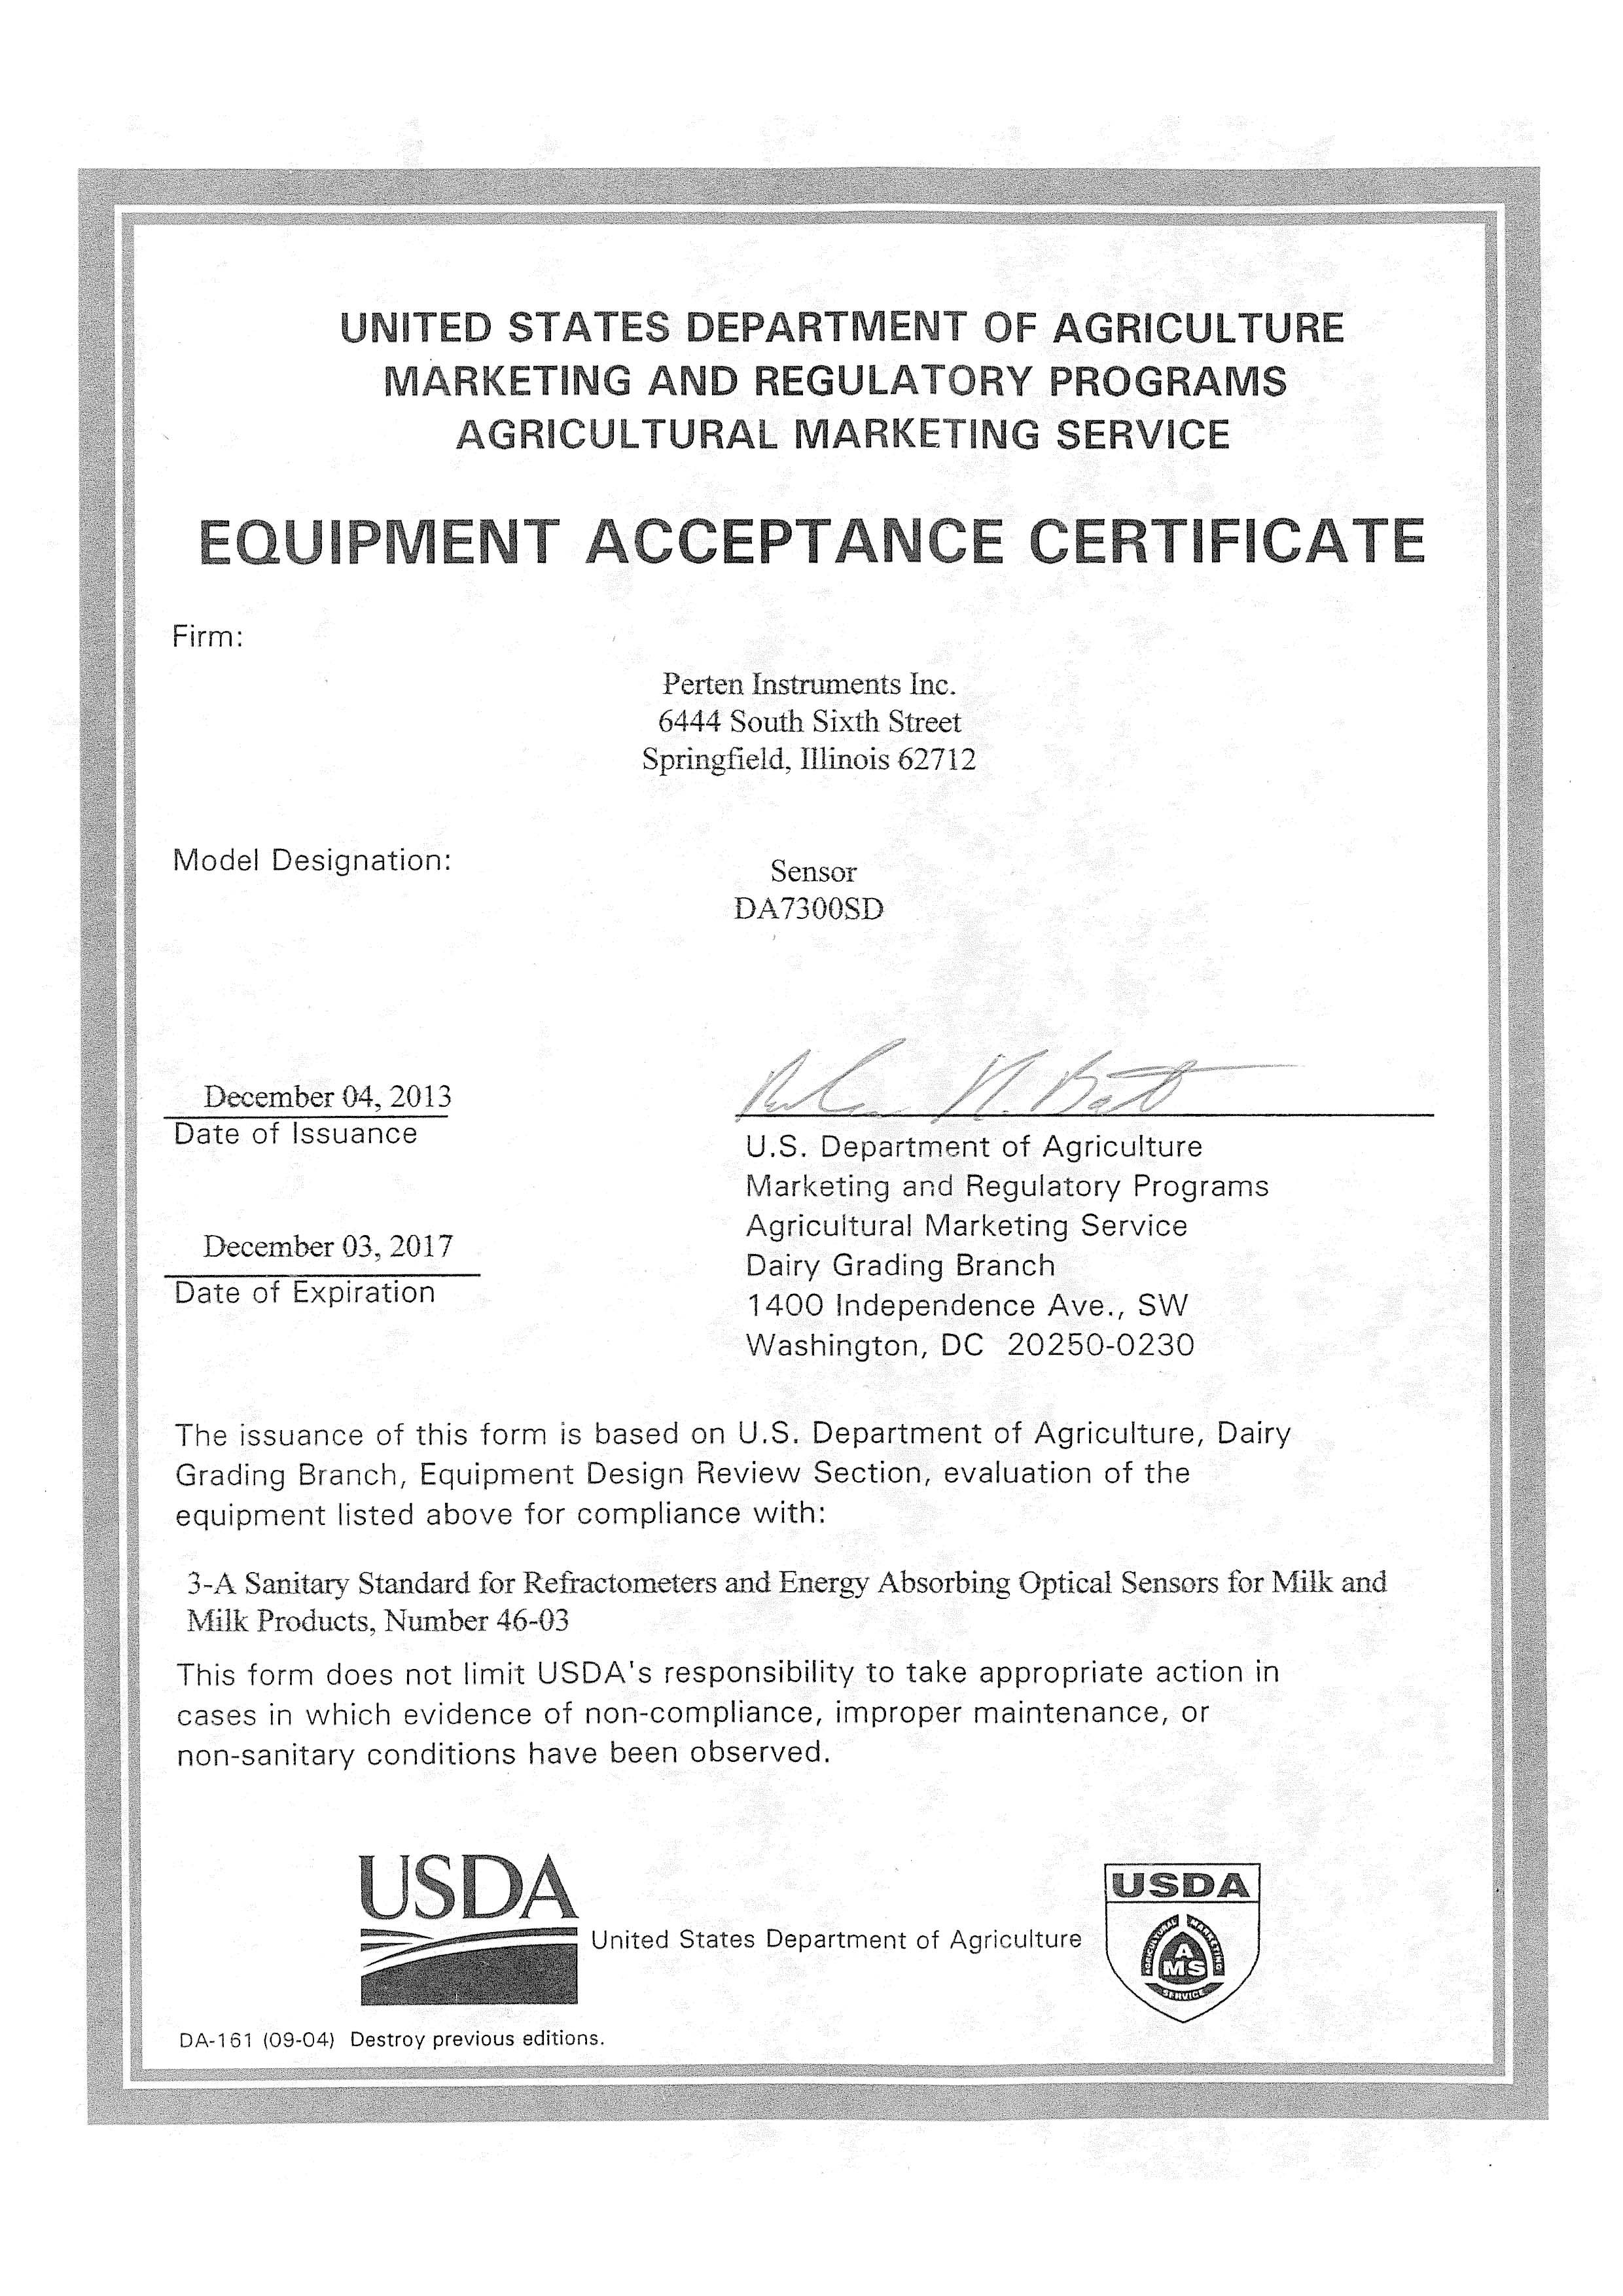 The DA 7300 SD Receives USDA Dairy Letter Of Acceptance